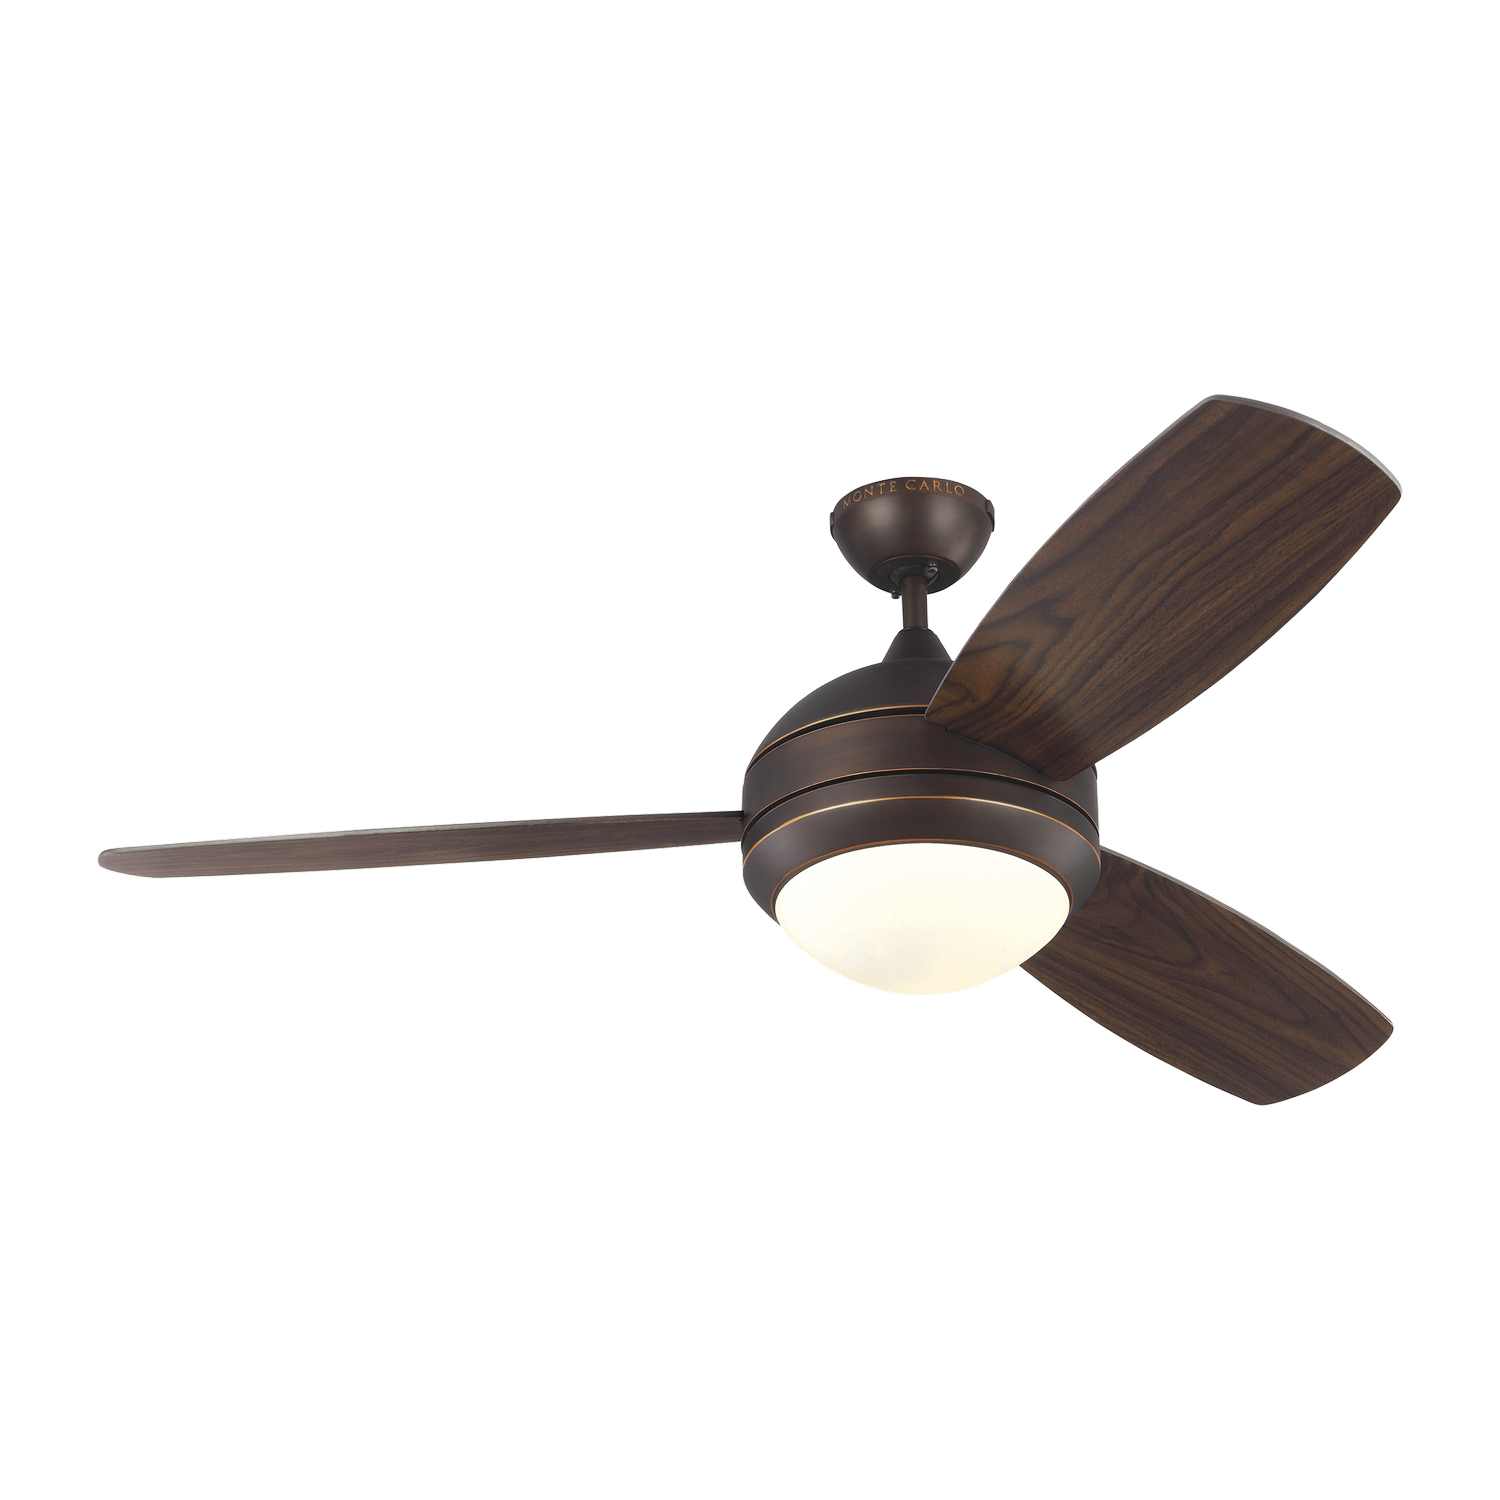 52 inchCeiling Fan from the Discus Trio collection by Monte Carlo 3DIR52RBD V1